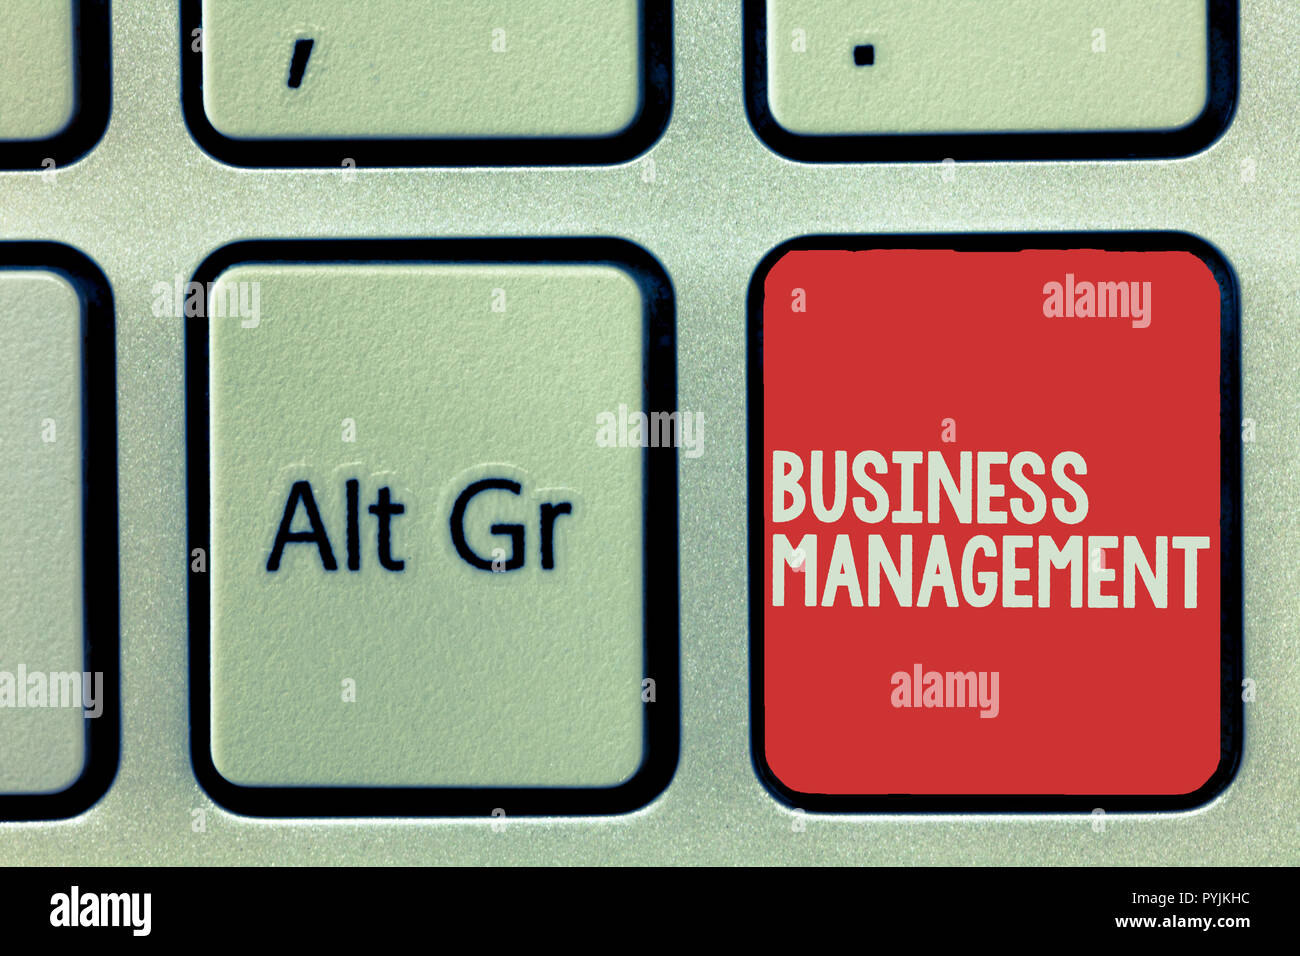 Text sign showing Business Management. Conceptual photo Overseeing Supervising Coordinating Business Operations. - Stock Image